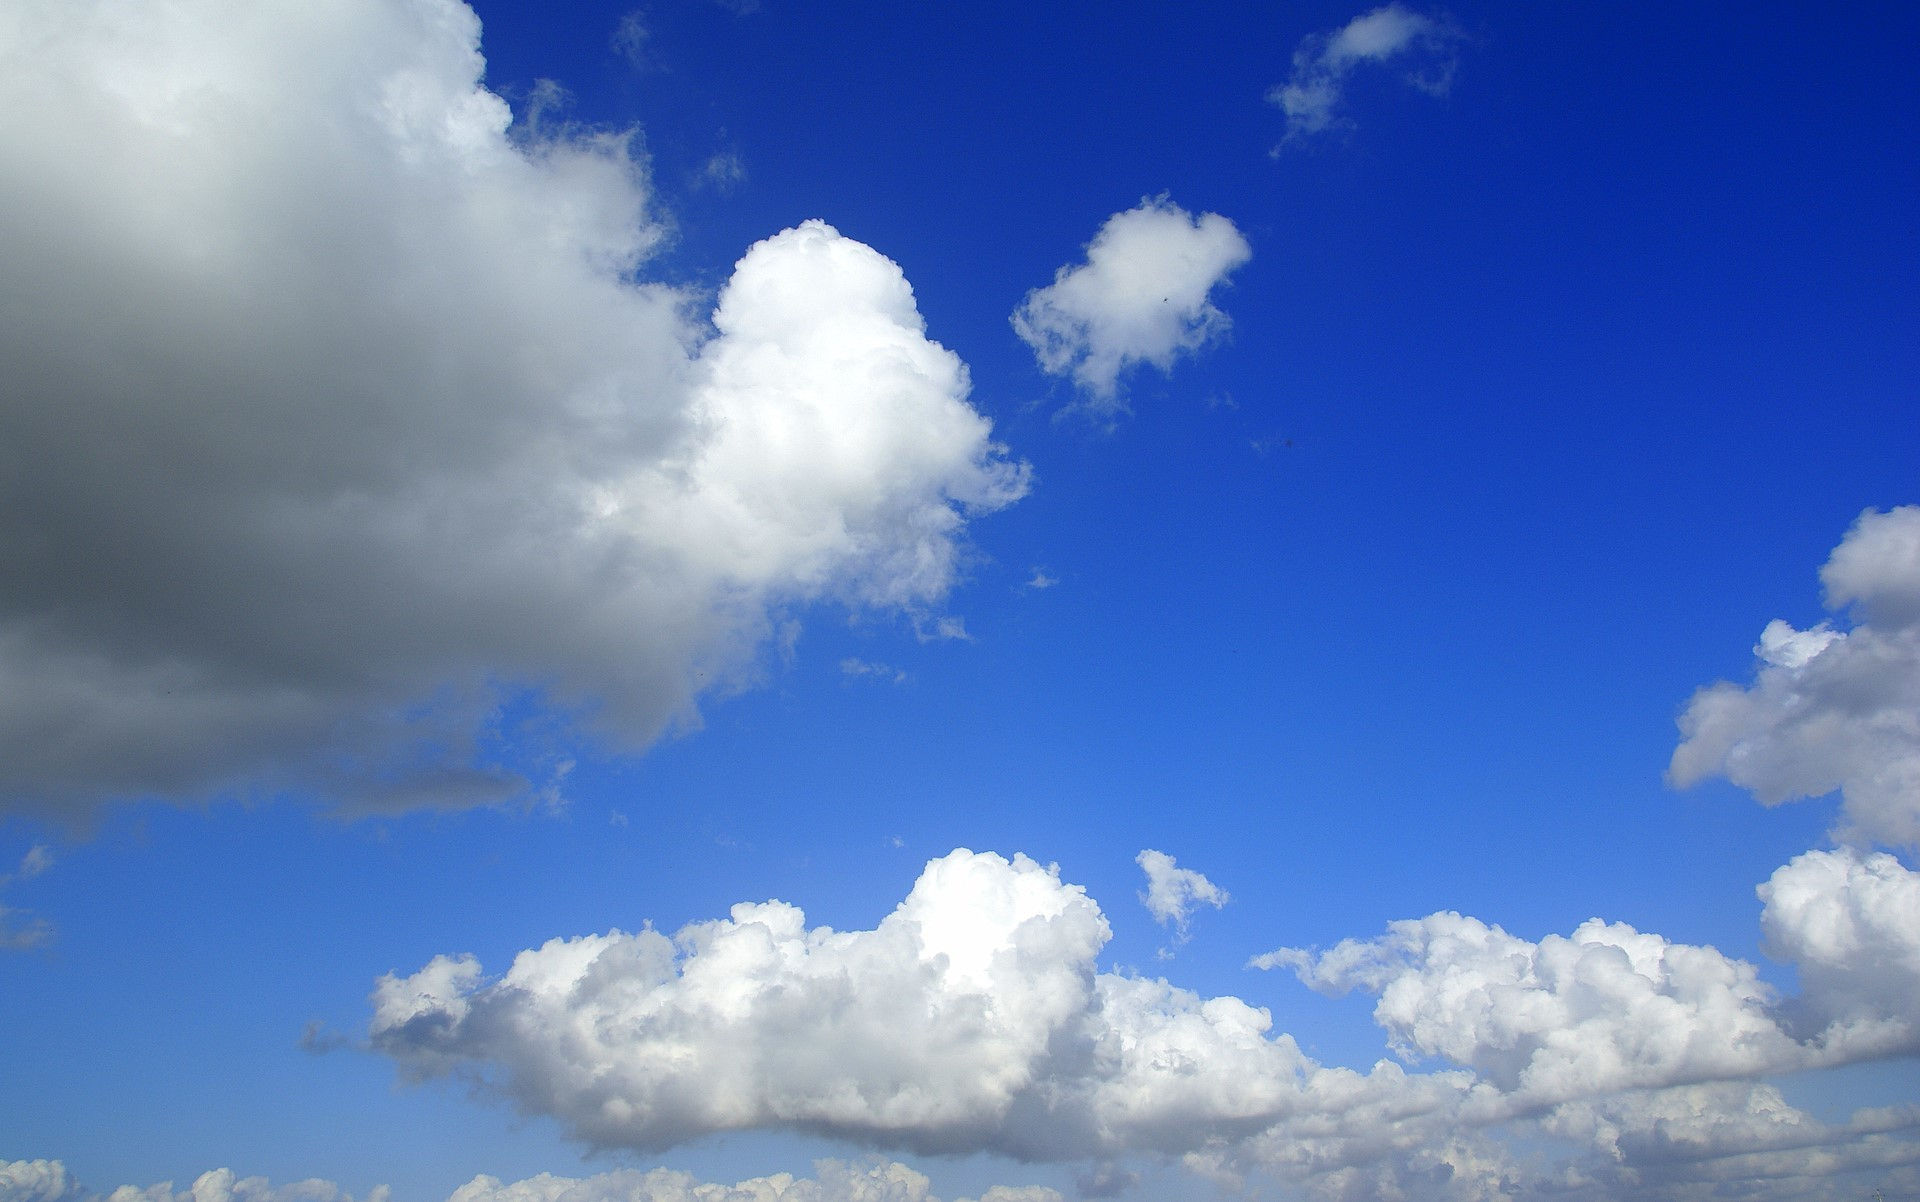 Blue Sky With Clouds Wallpaper (56+ Images